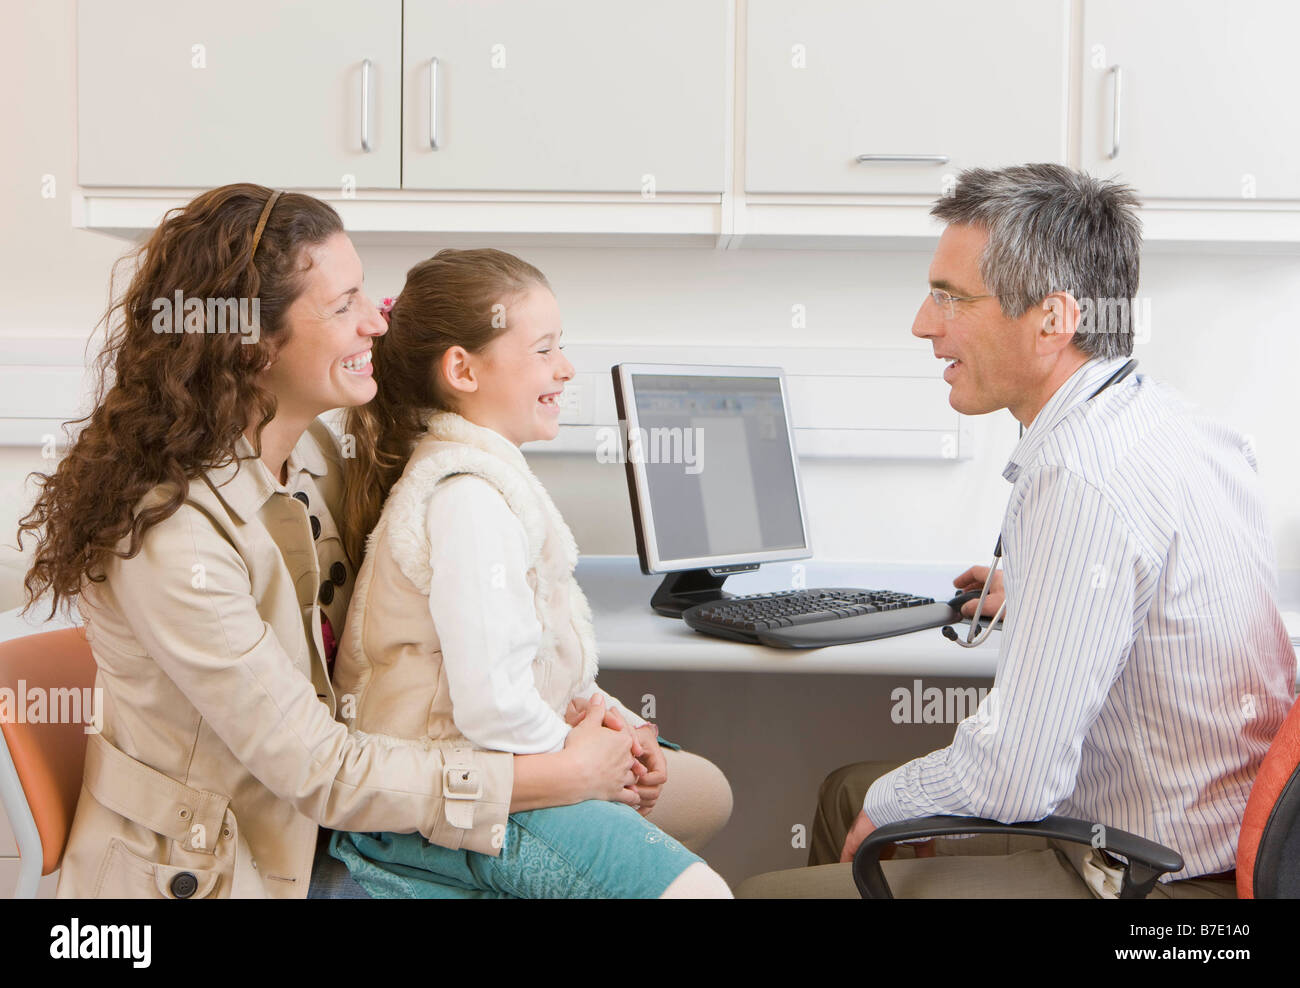 A mother and daughter visit the doctor Stock Photo